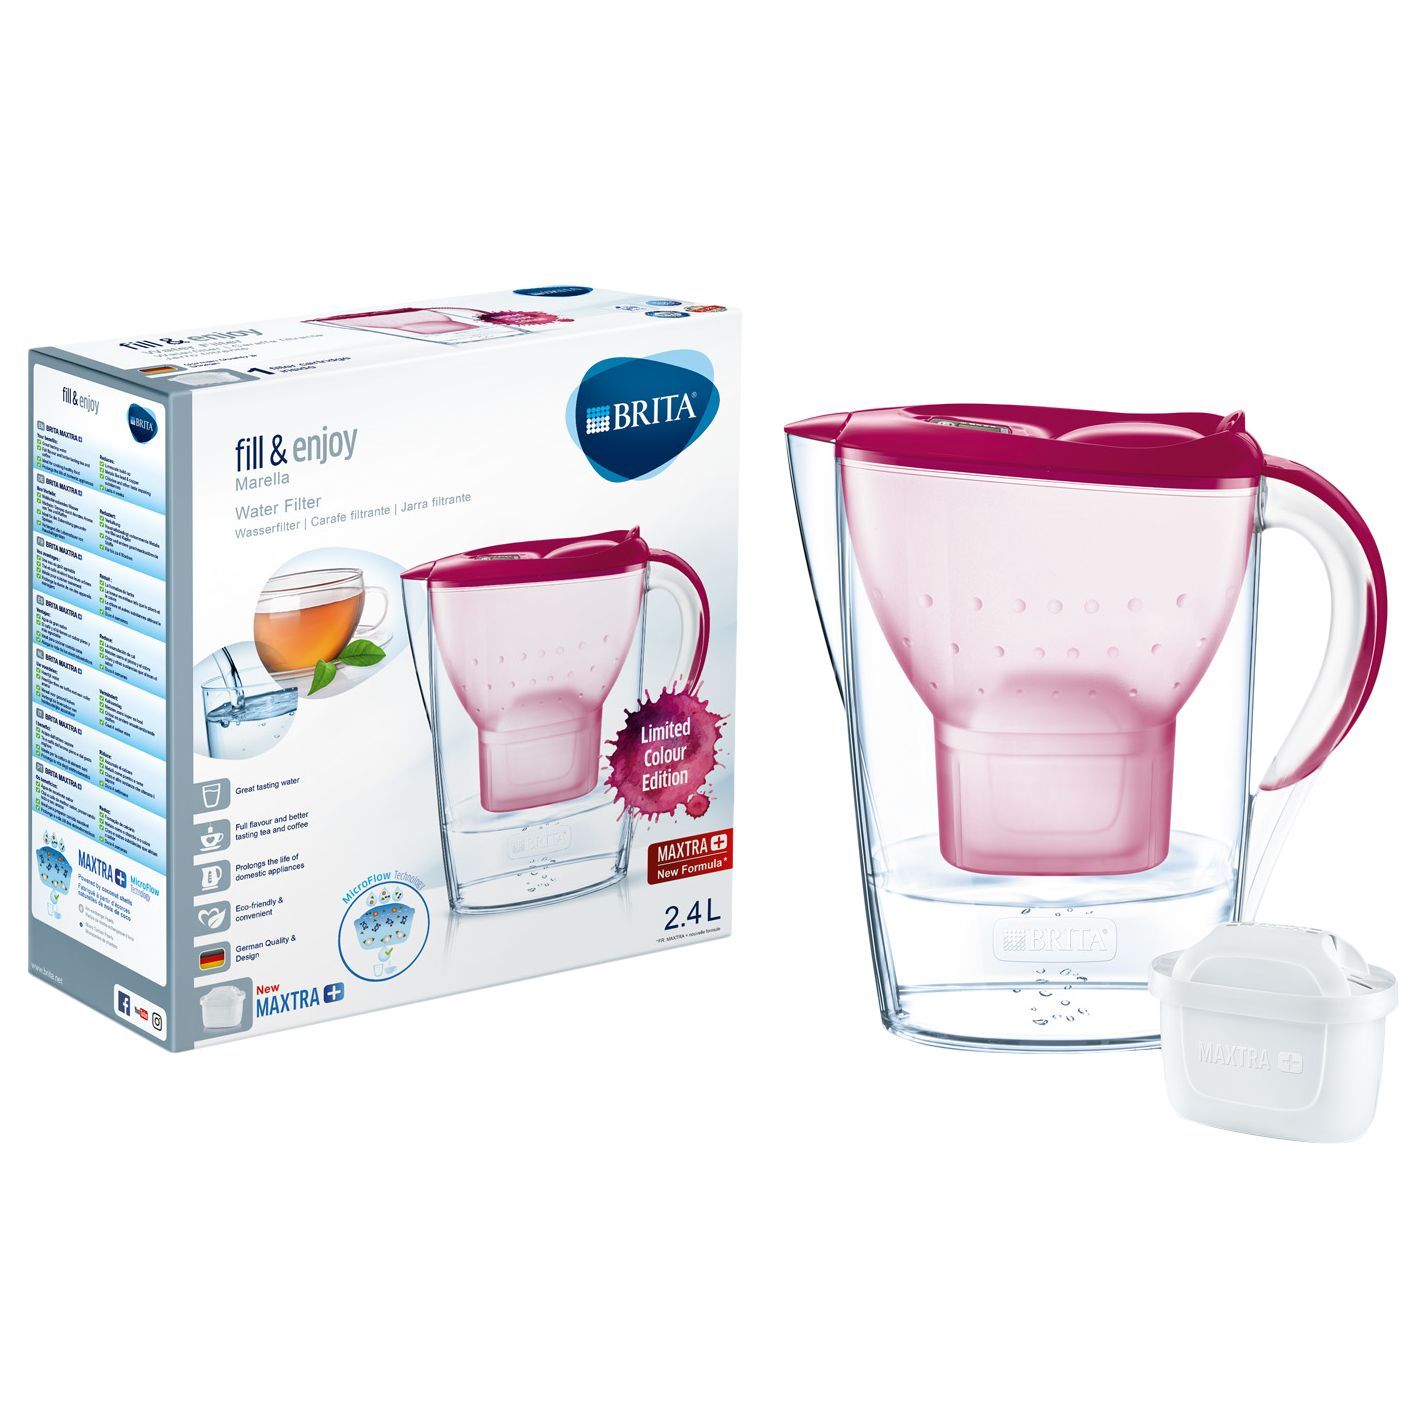 Brita Maxtra+ Marella Water Filter Jug, Cool Berry, 2 4L at John